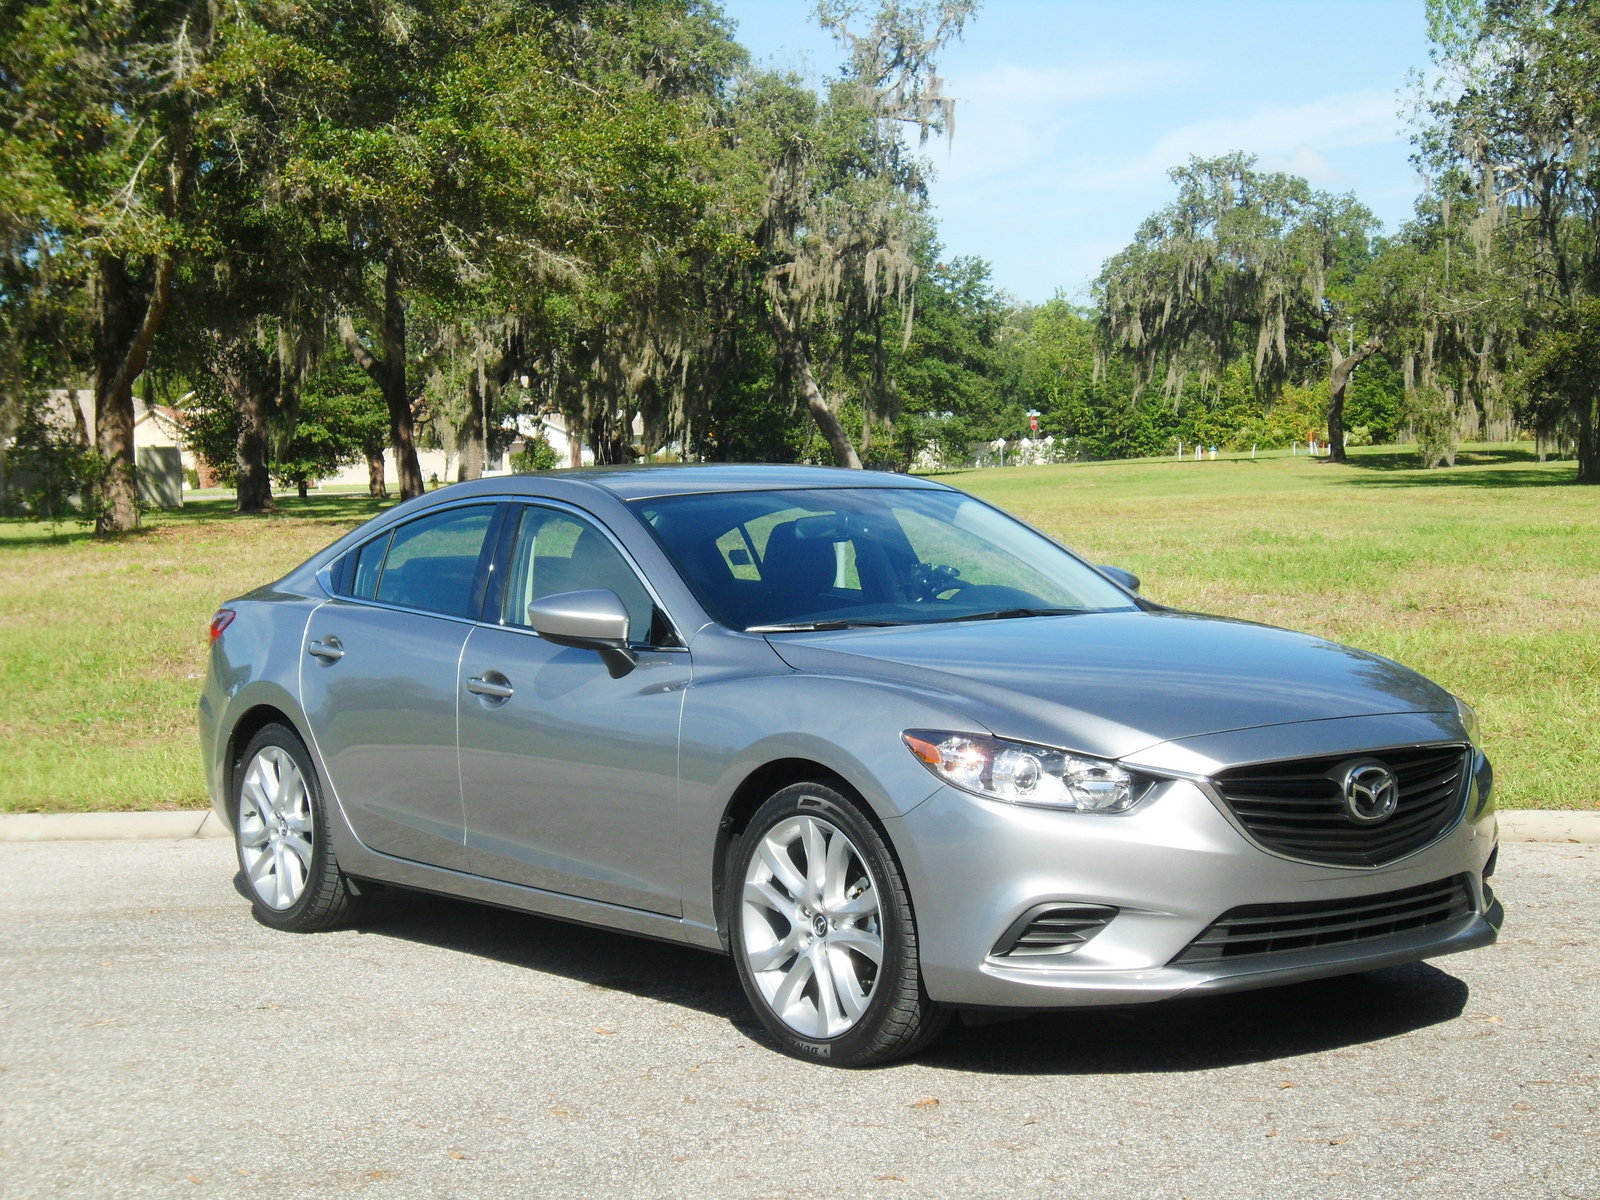 2014 mazda6 i touring driven review top speed. Black Bedroom Furniture Sets. Home Design Ideas